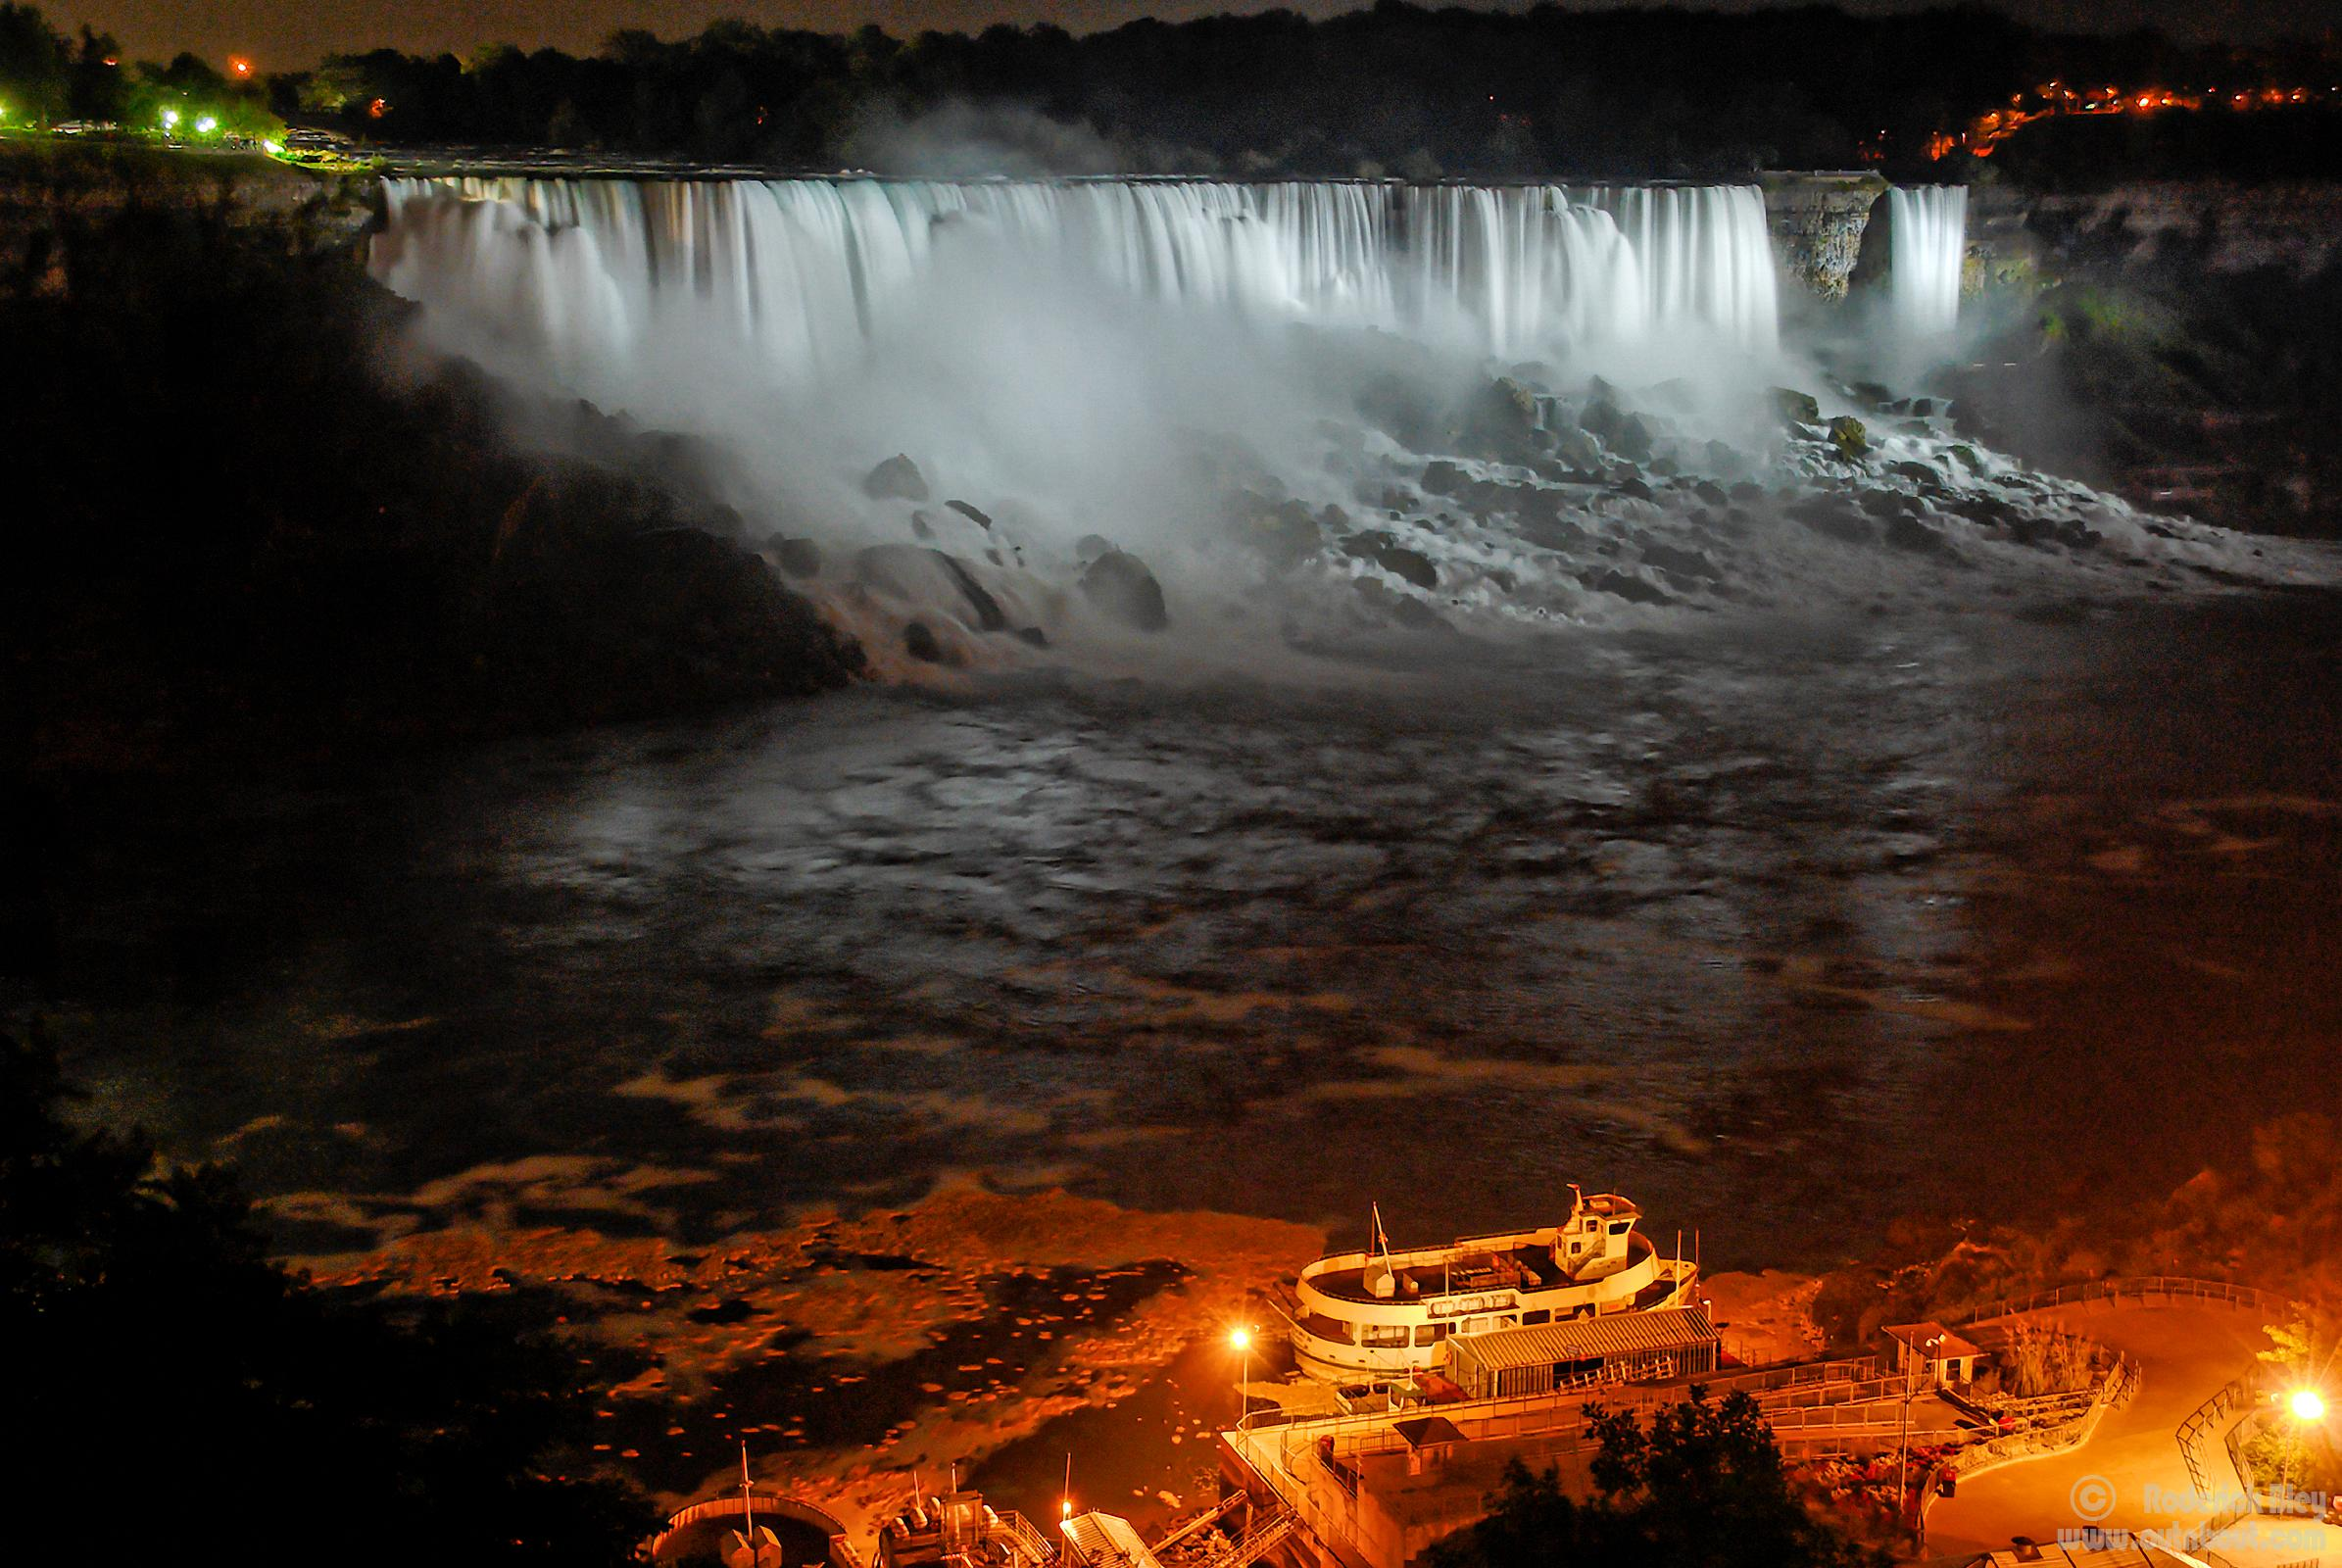 American Falls & Maid of the Mist (night illumination)